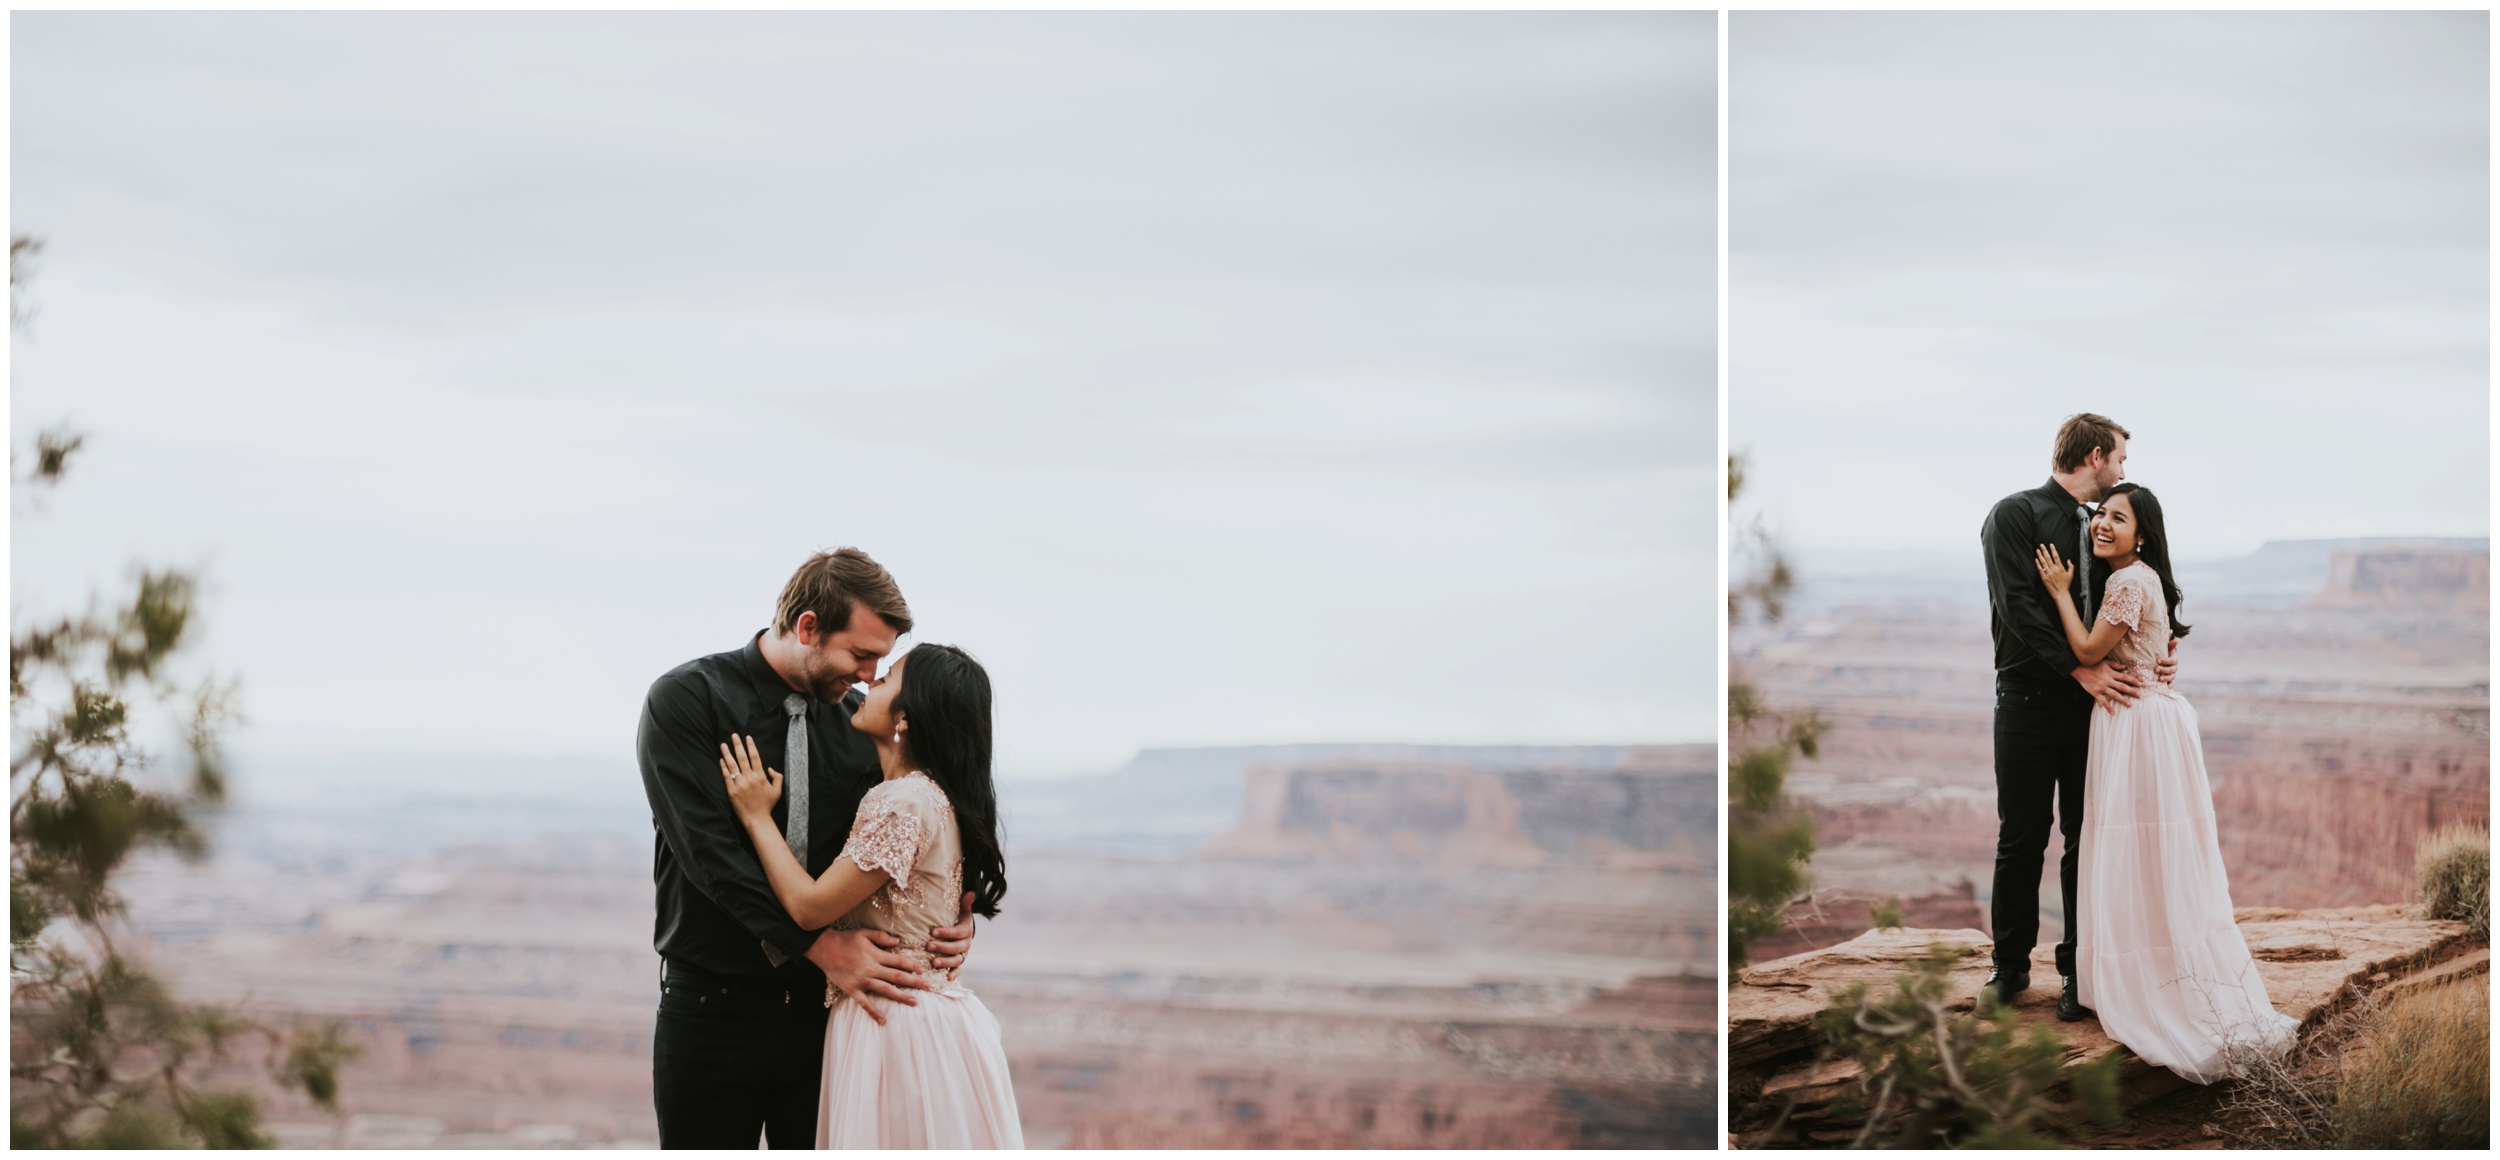 Couple cuddling at Dead Horse Point State Park Overlook | Elopement Photographer www.riversandroadsphotography.com